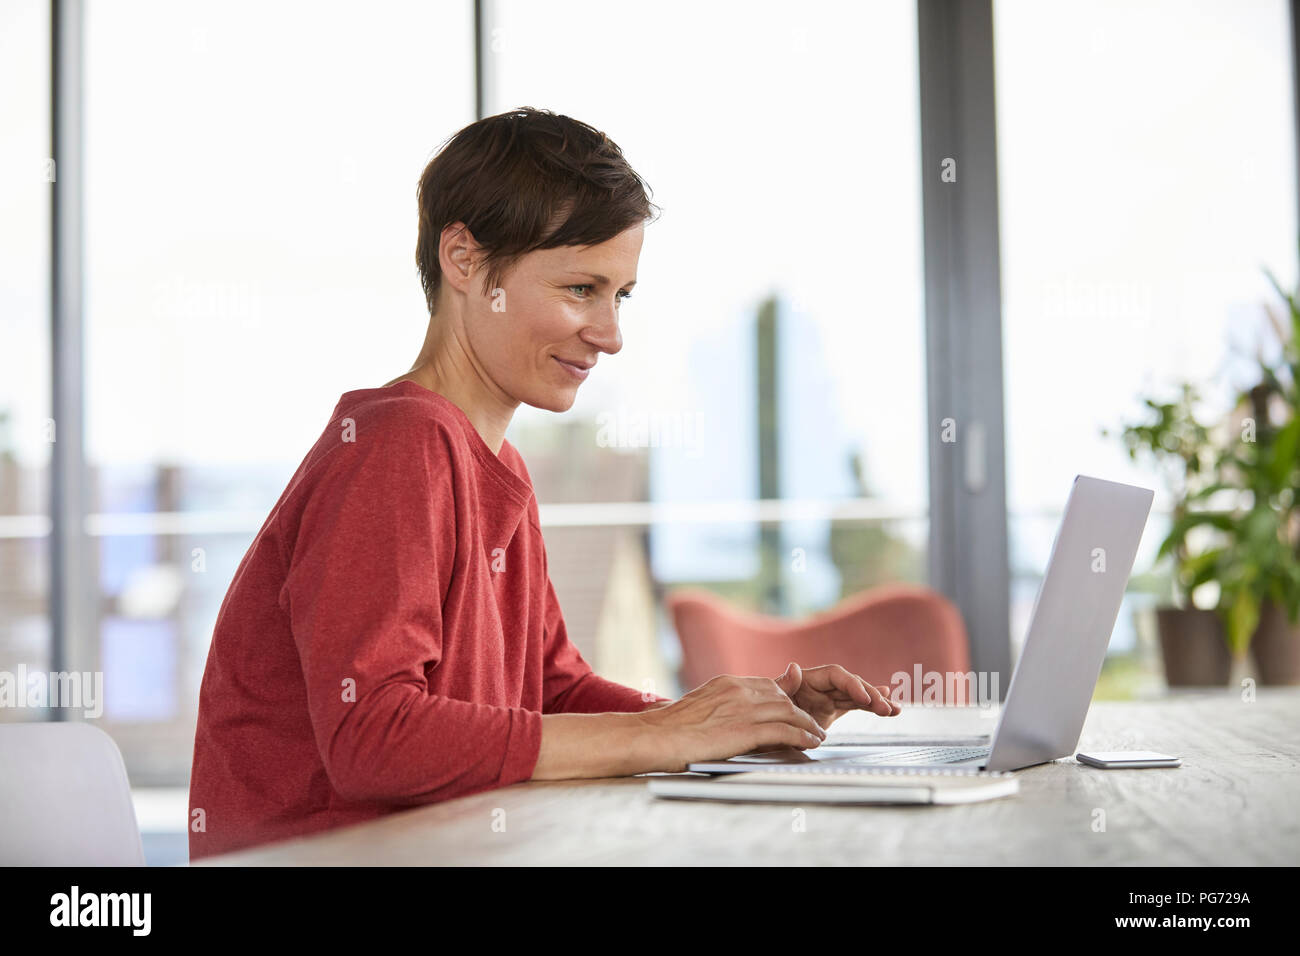 Smiling woman sitting at table at home using laptop - Stock Image